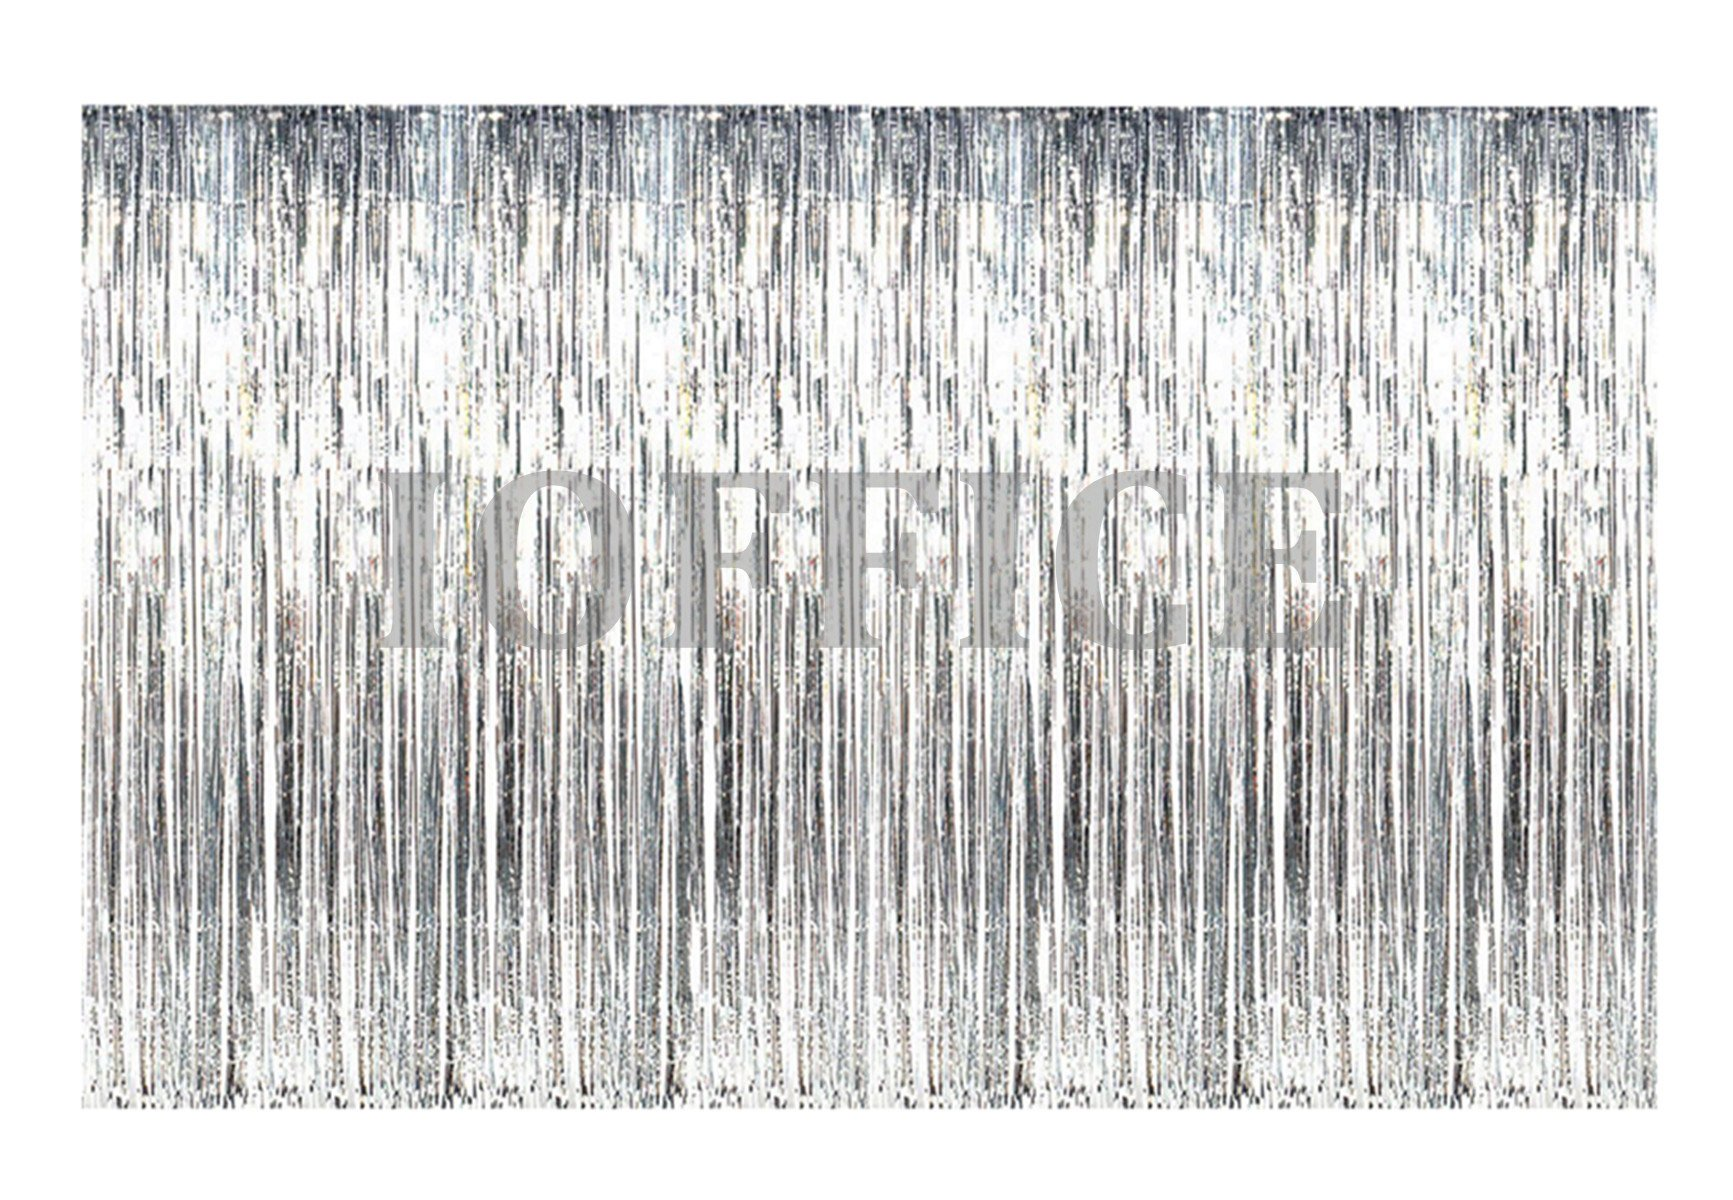 IOFFICE 12' X 8' (144'' X 96'') Metallic Silver Foil Fringe Curtains Door Window Curtain Party Decoration (12' x 8', Silver)